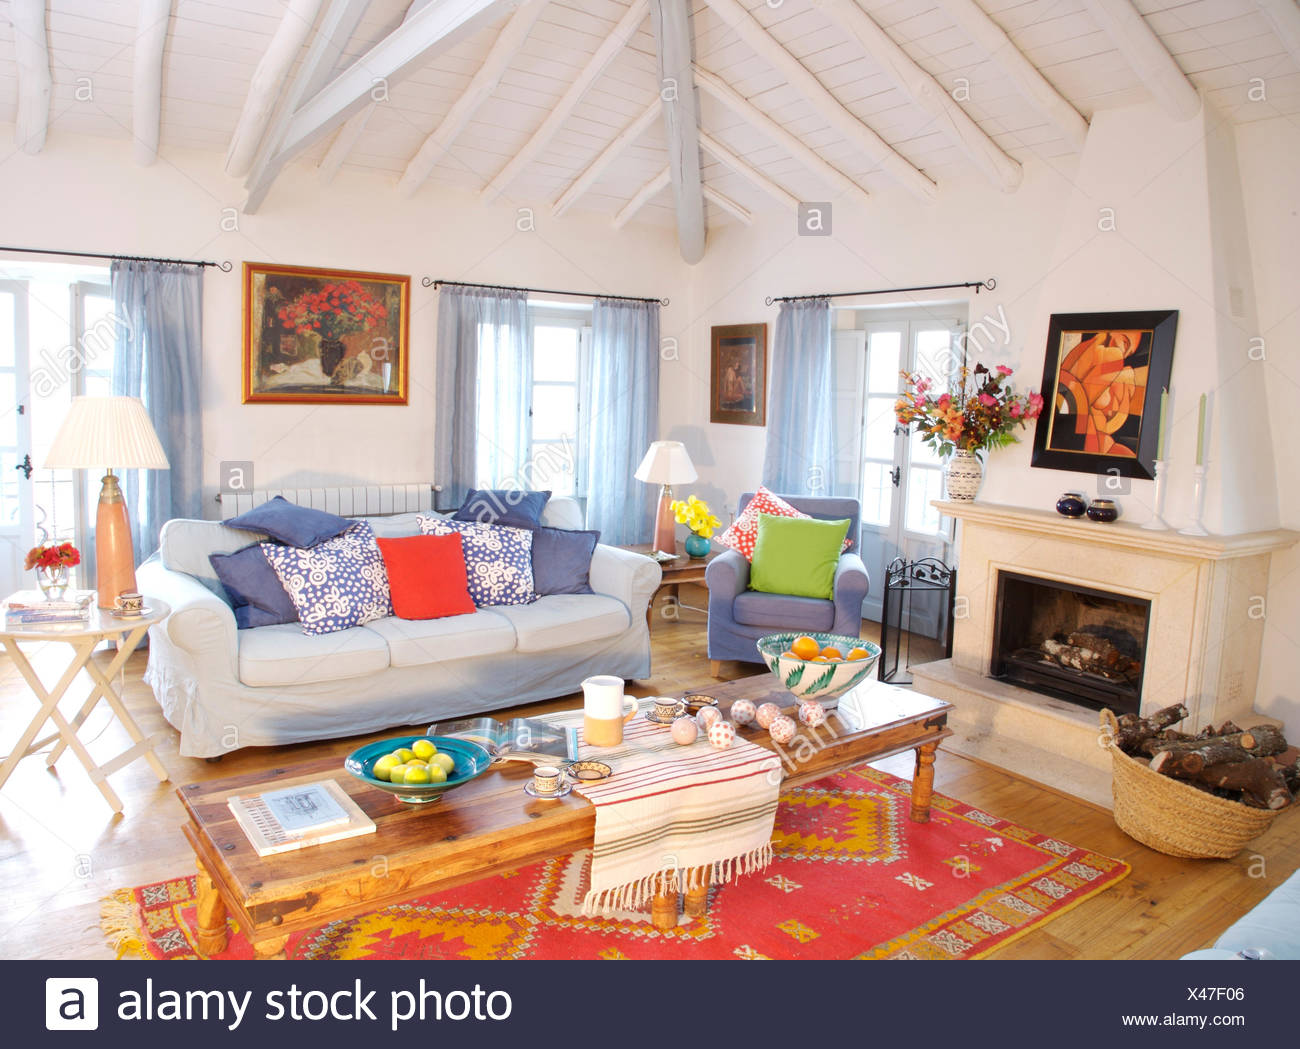 What Is Sofa In Spanish Colorful Cushions On White Sofa In Spanish Country Living Room